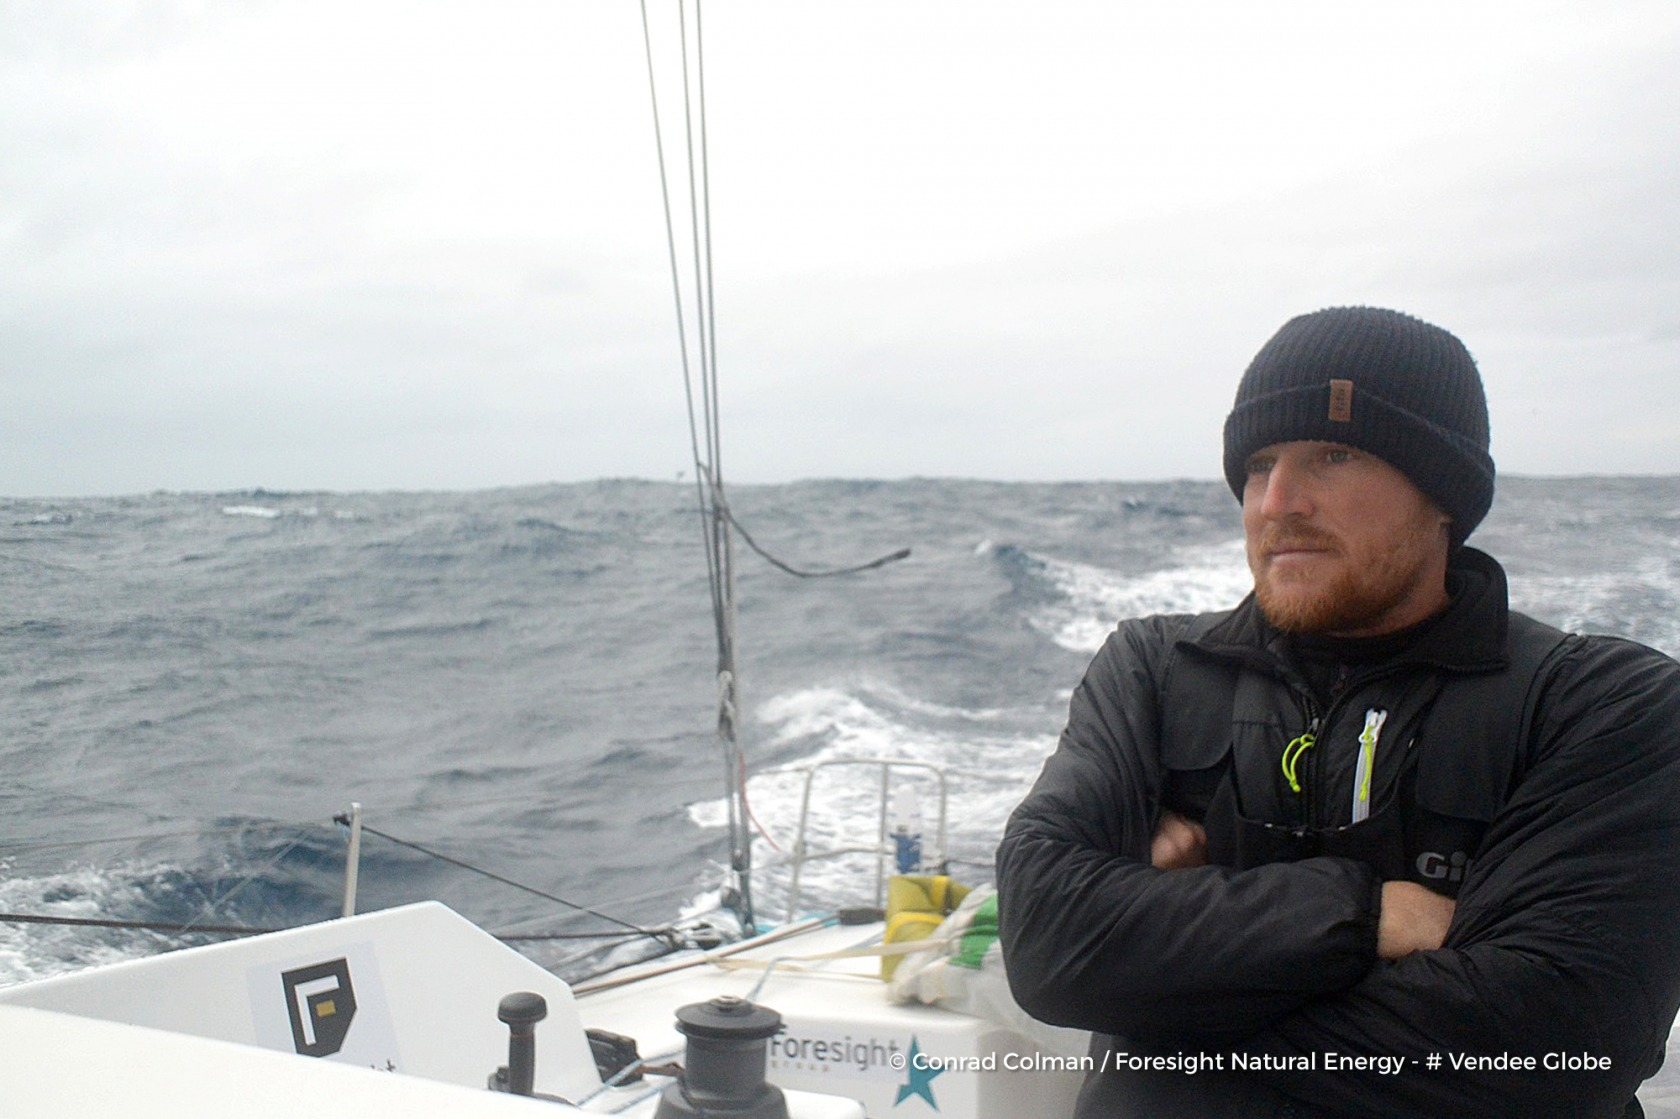 Photo sent from the boat Foresight Natural Energy, on December 14th, 2016 - Photo Conrad ColmanPhoto envoyée depuis le bateau Foresight Natural Energy le 14 Décembre 2016 - Photo Conrad ColmanCold portrait in the south